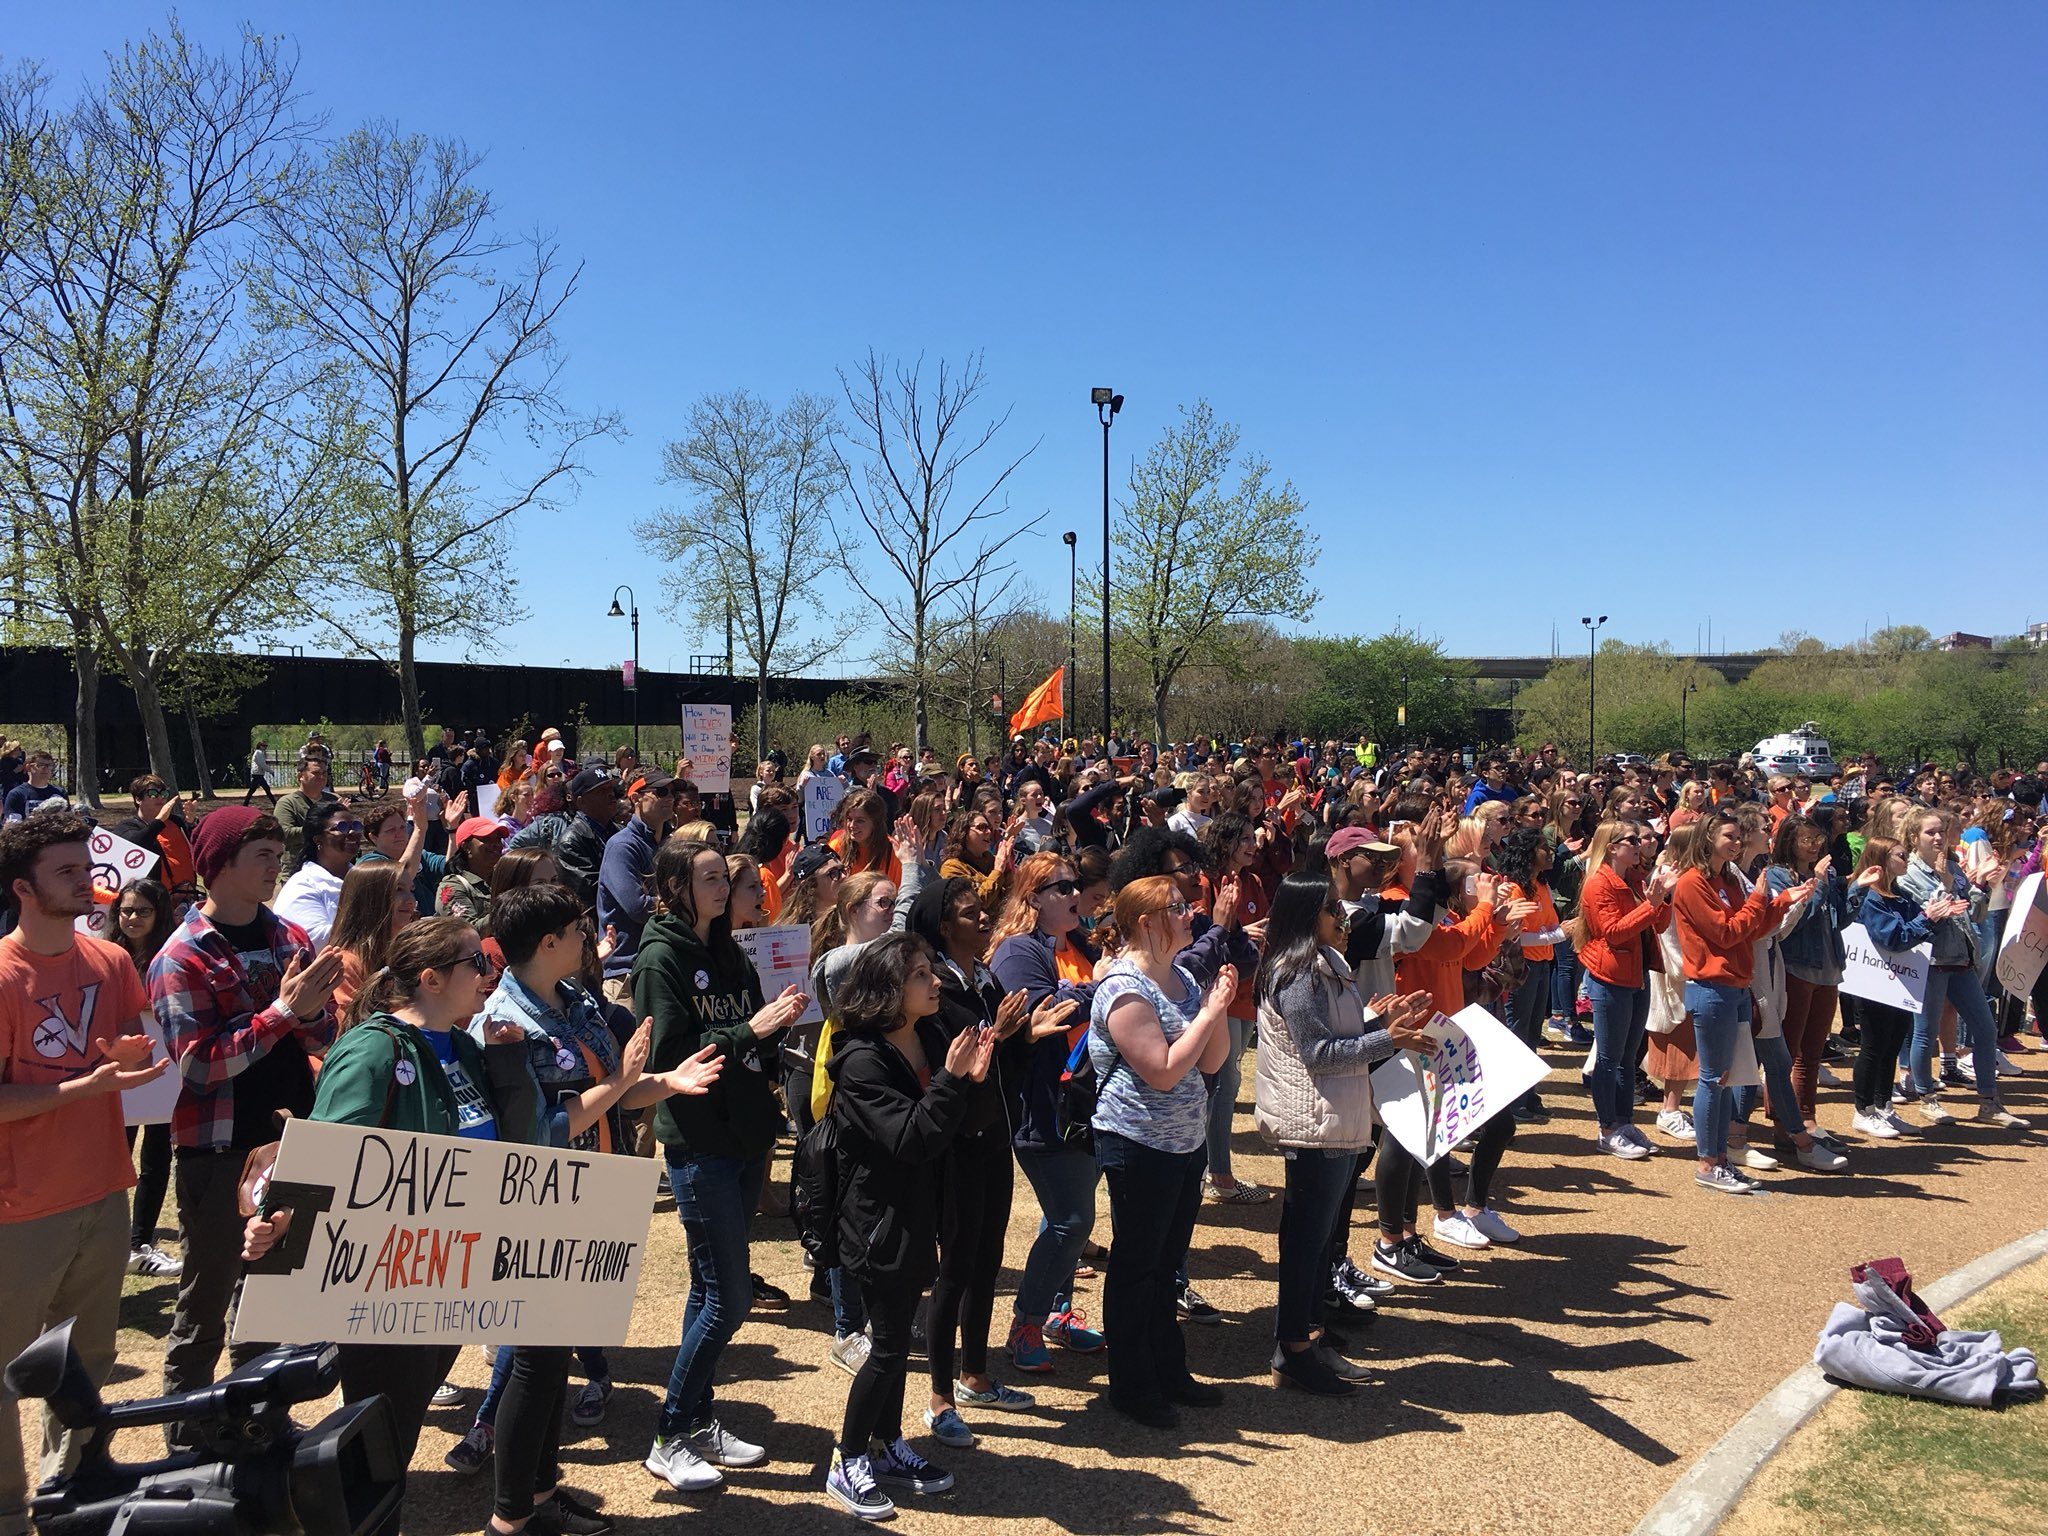 Awesome and inspiring #NationalSchoolWalkout march here in Richmond! https://t.co/Pzla4vbZEu